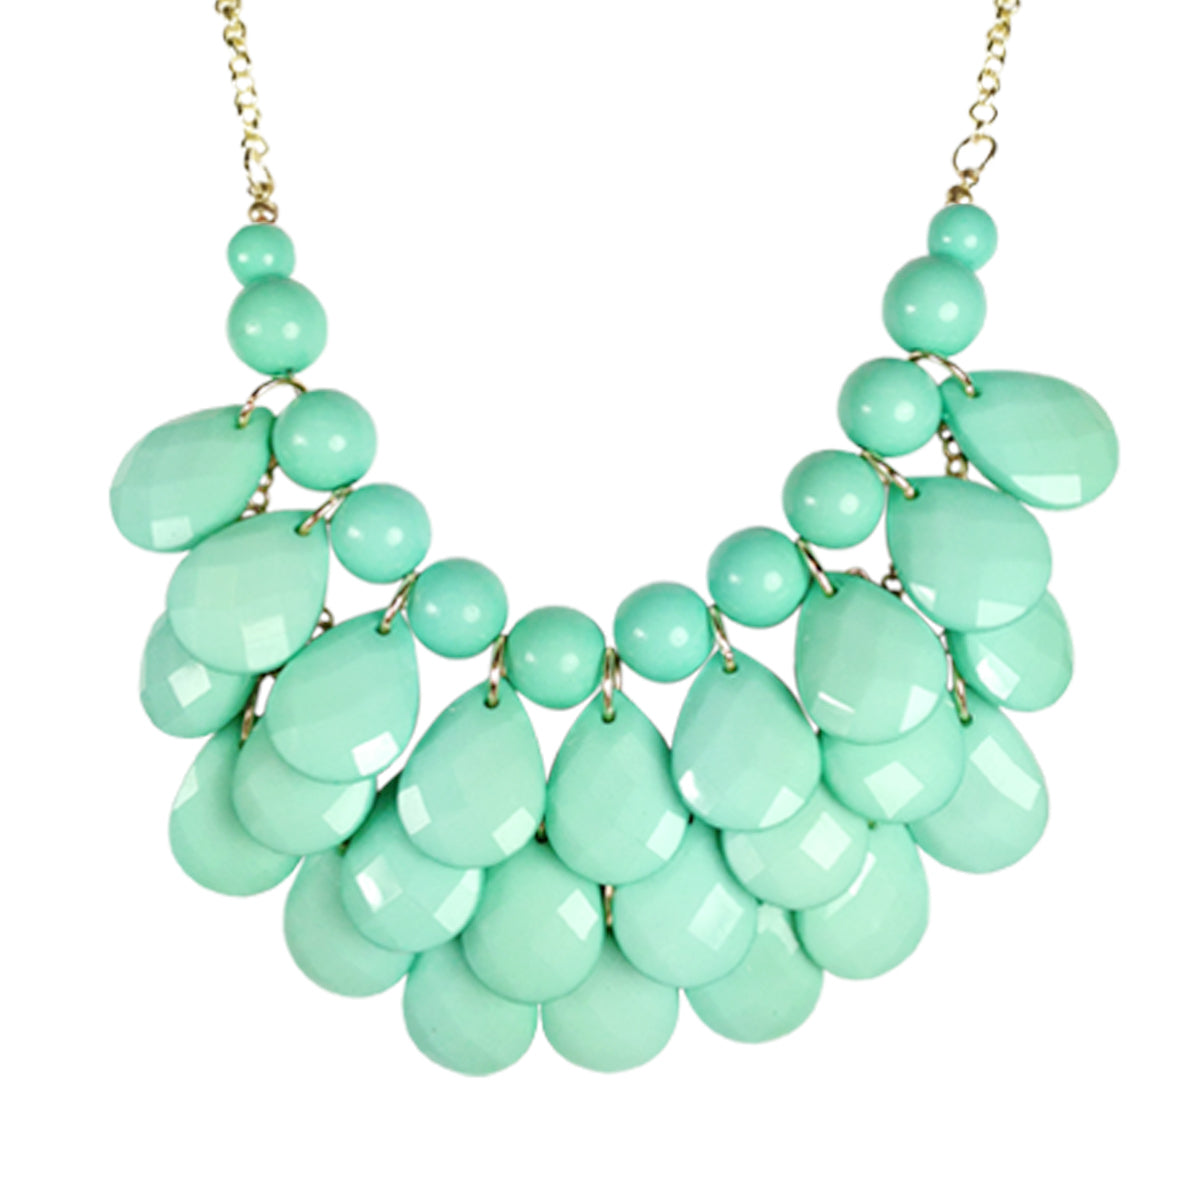 Wrapables Teardrop Bubble Bib Necklace, Light Turqoise